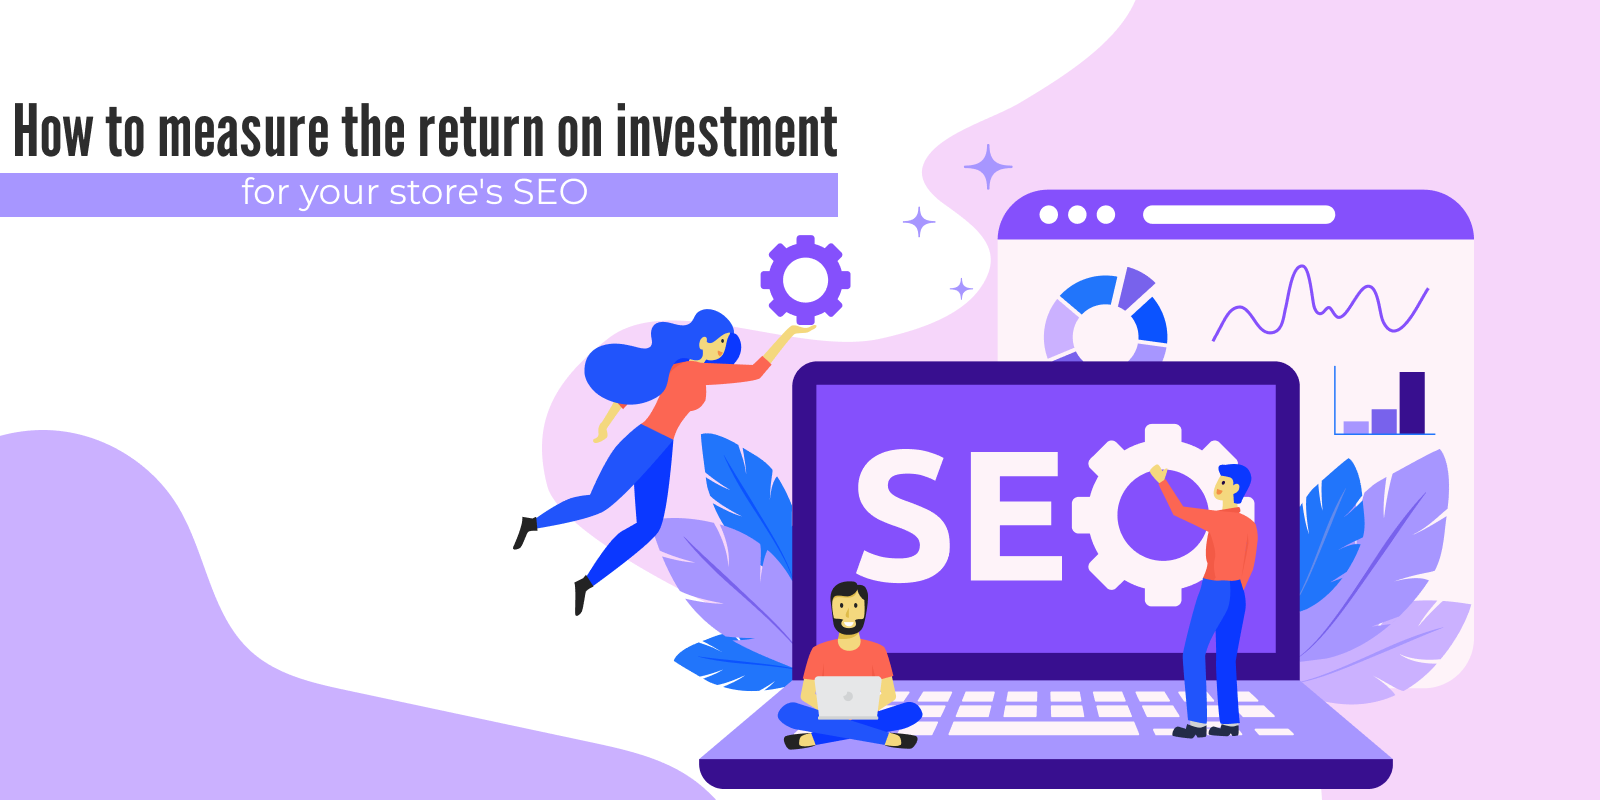 Evaluate the financial efficiency of your SEO efforts by calculating the return on investment